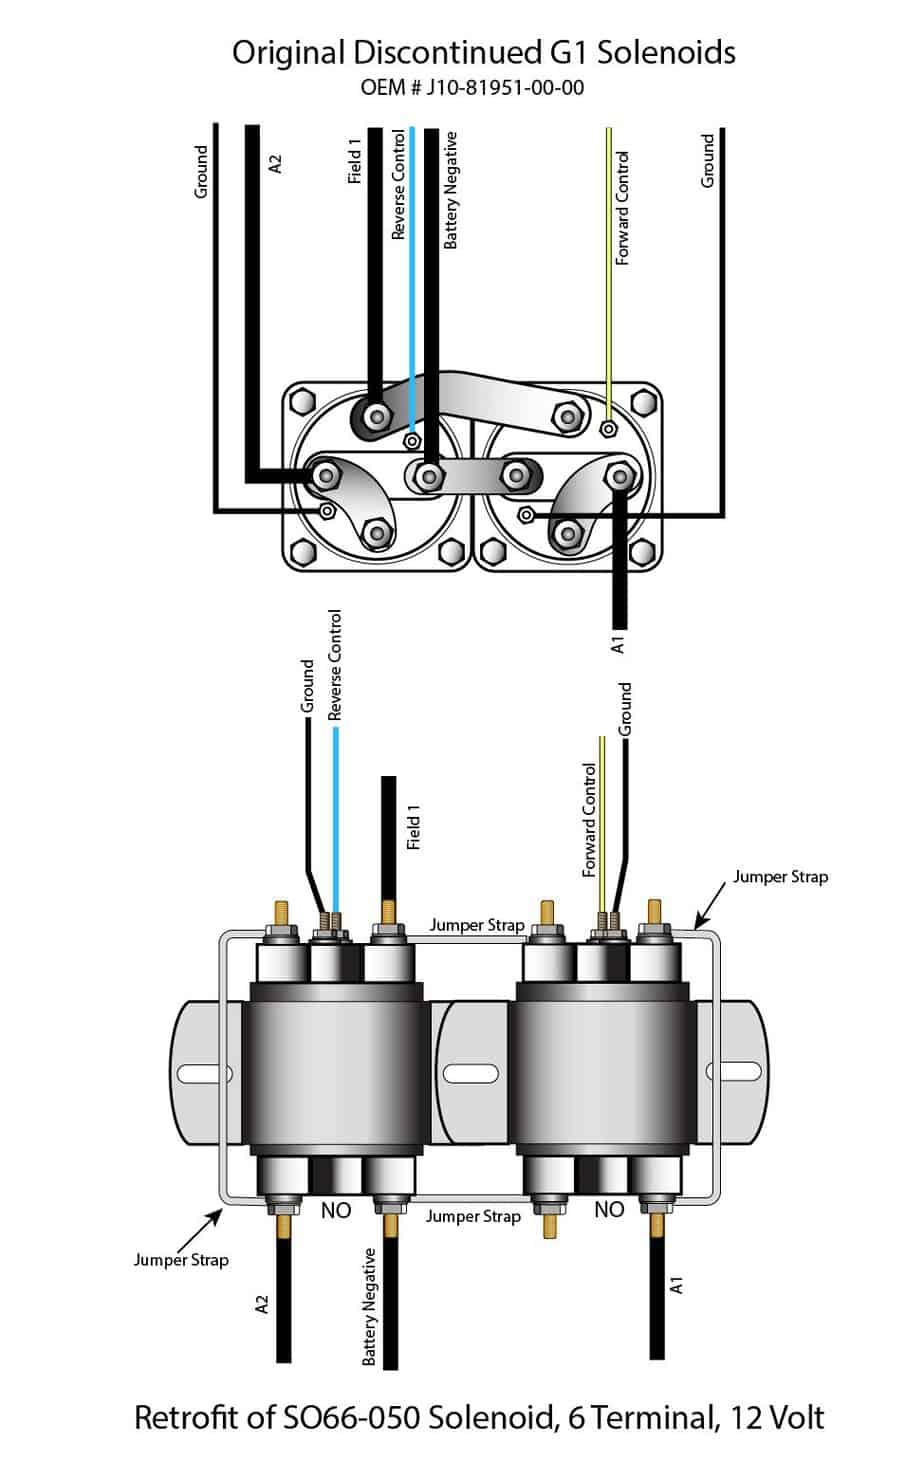 Yamaha Gas Golf Cart Wiring Diagram from golfcarttips.com